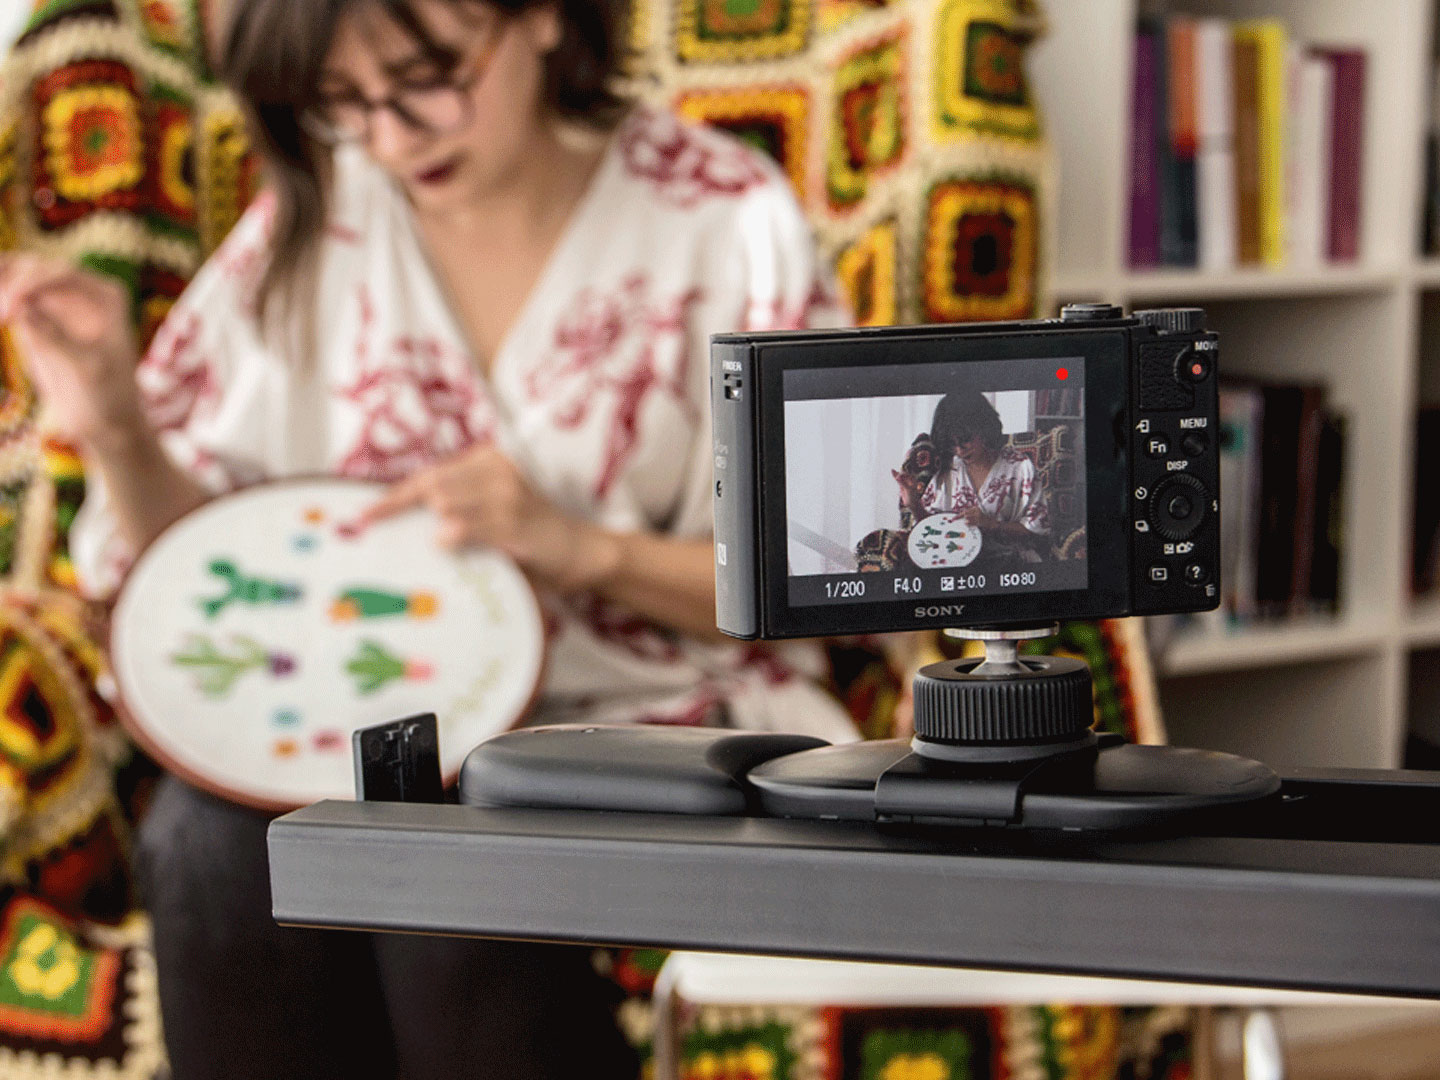 With Flow X and Track modules, MUWI is the most compact, portable, and affordable equipment for your camera.